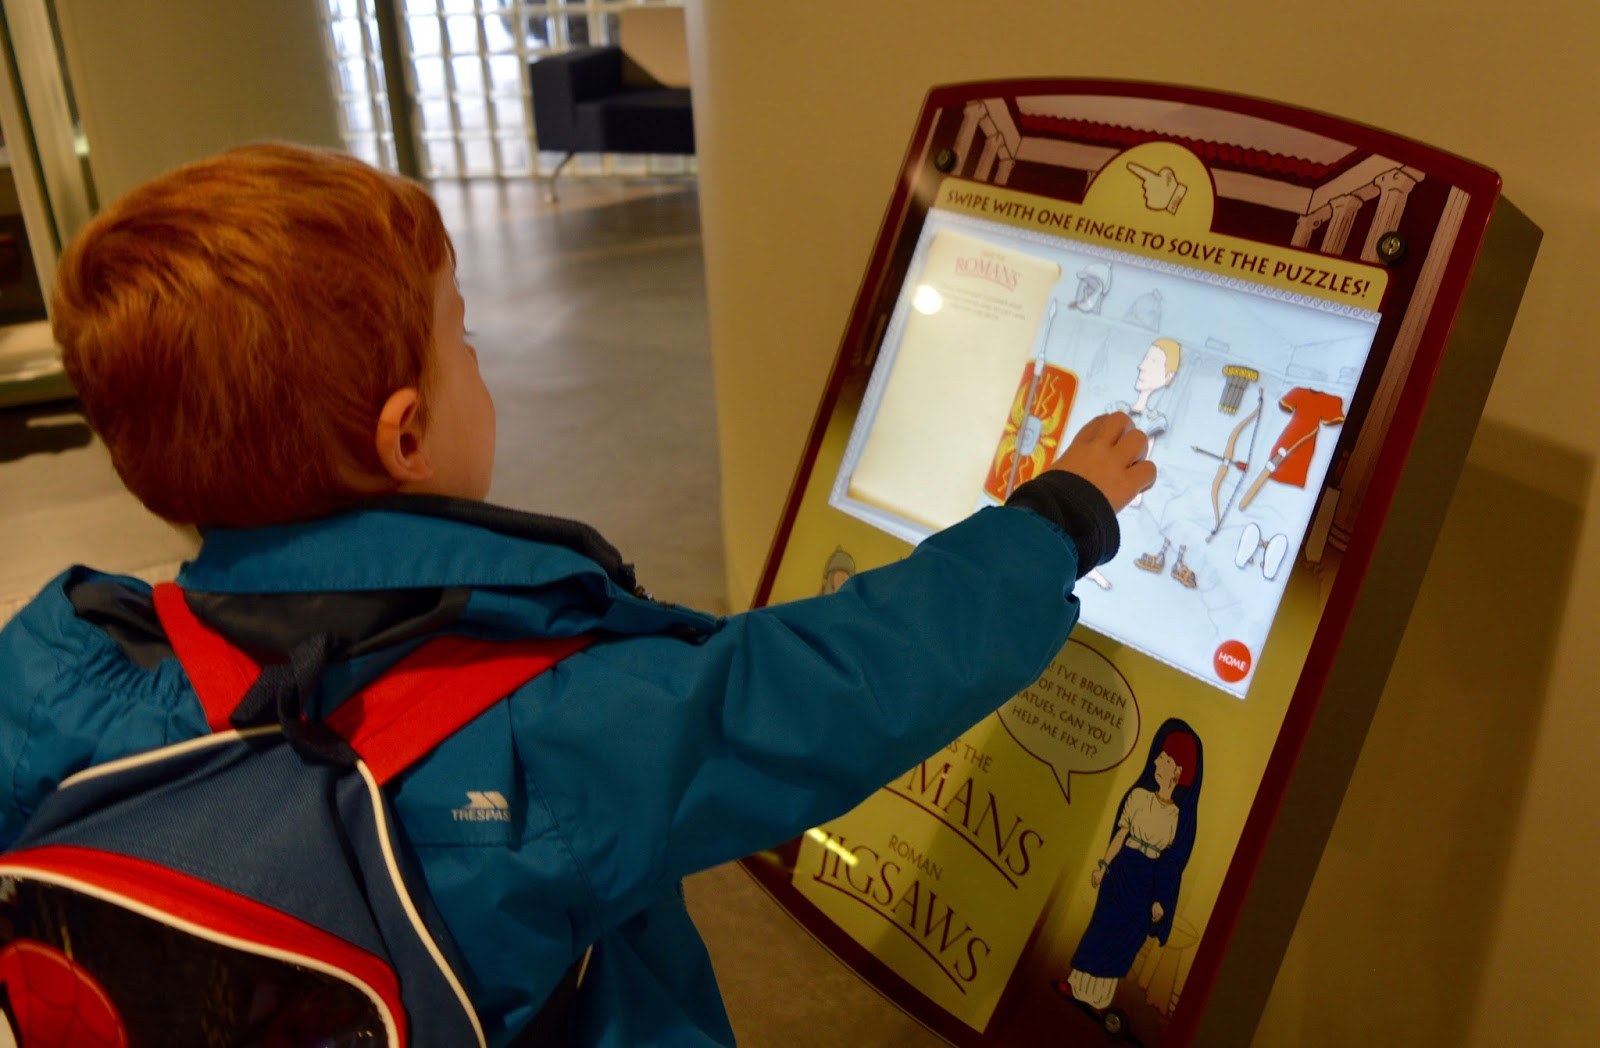 Great Days Out with Northern  | Our Day Trip to Carlisle by Train - Electronic Roman dress up game at Tullie museum